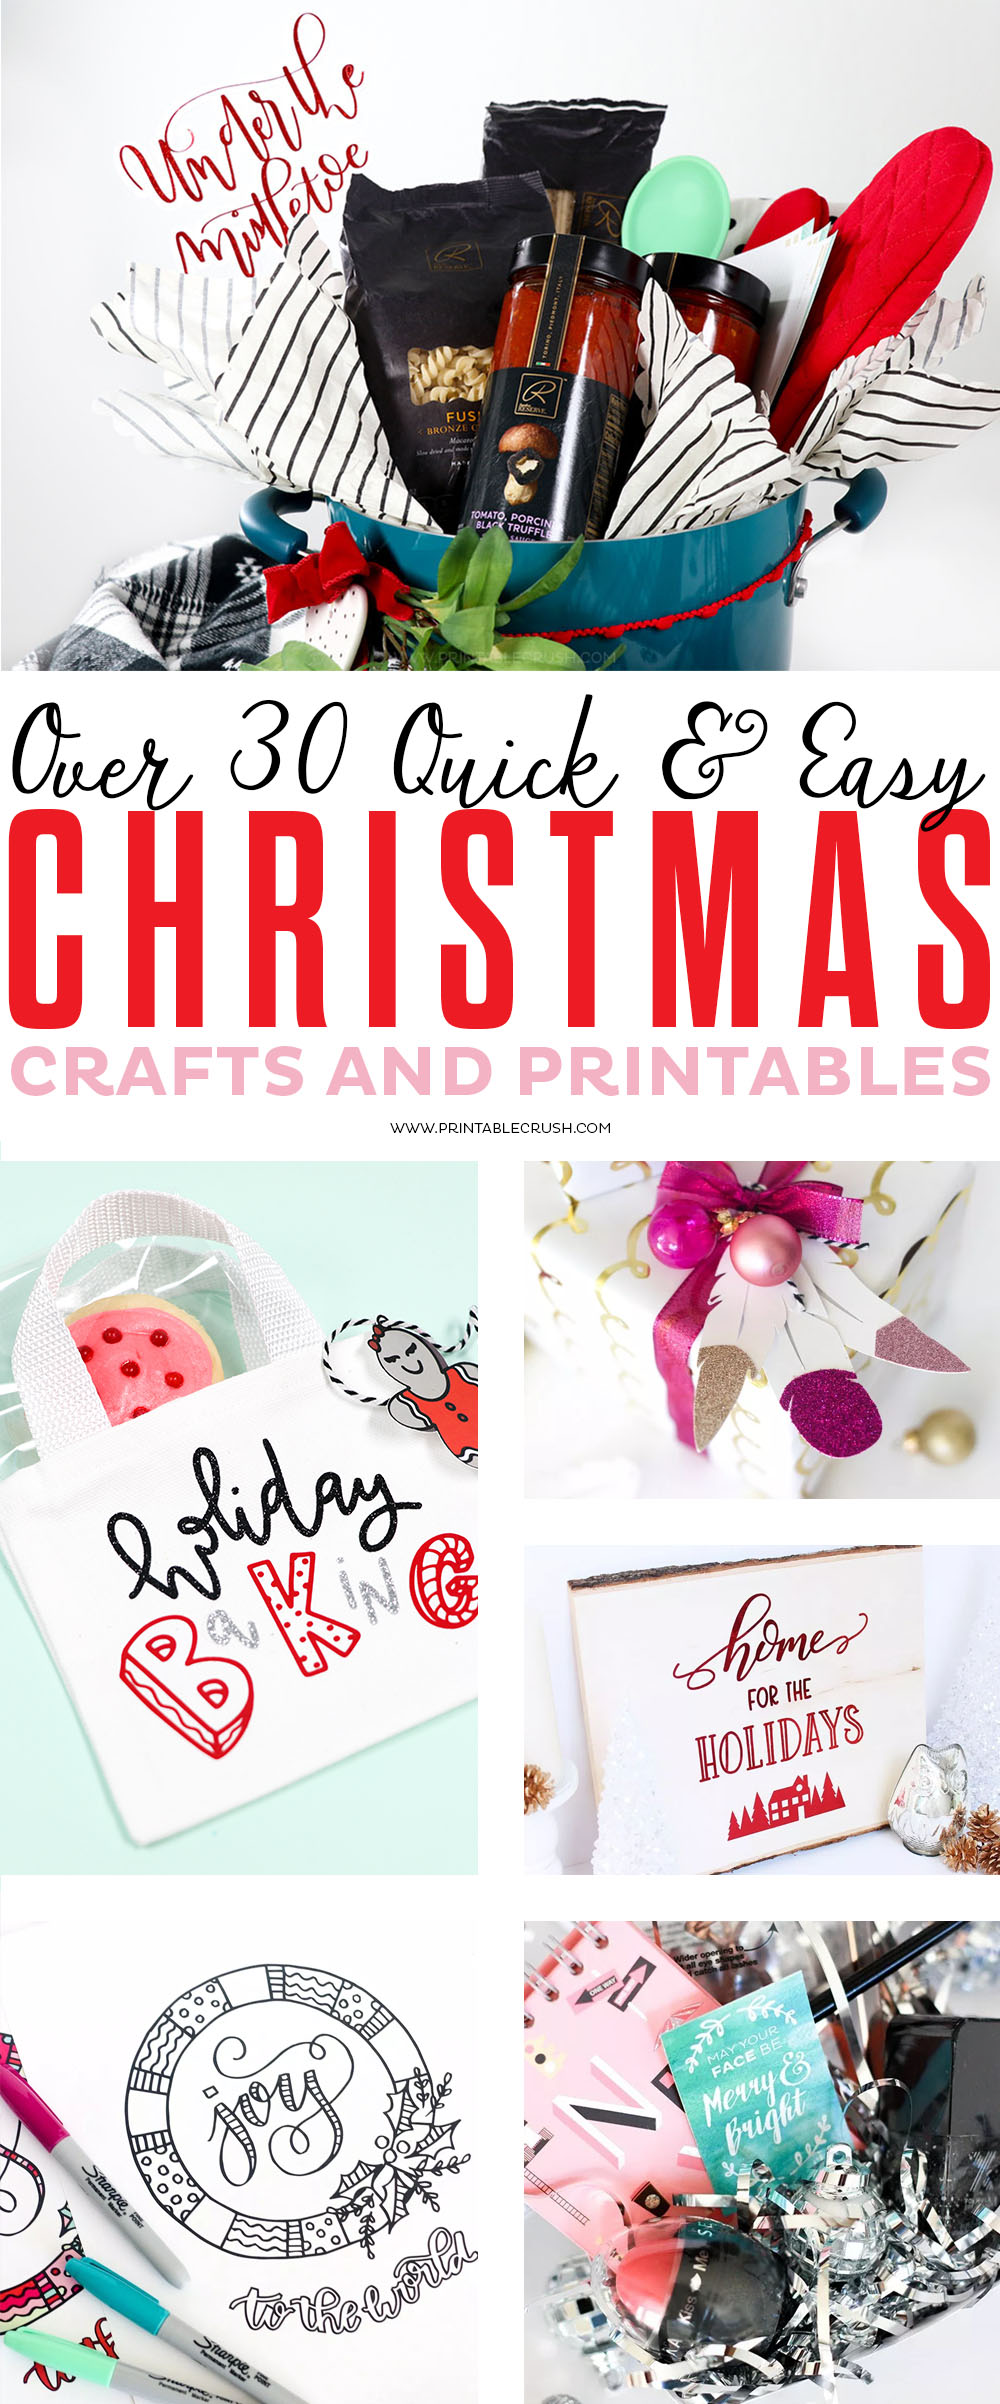 If Christmas is your favorite time of year, then check out over 30 Quick Christmas Crafts, Gift Ideas, and Printables! via @printablecrush